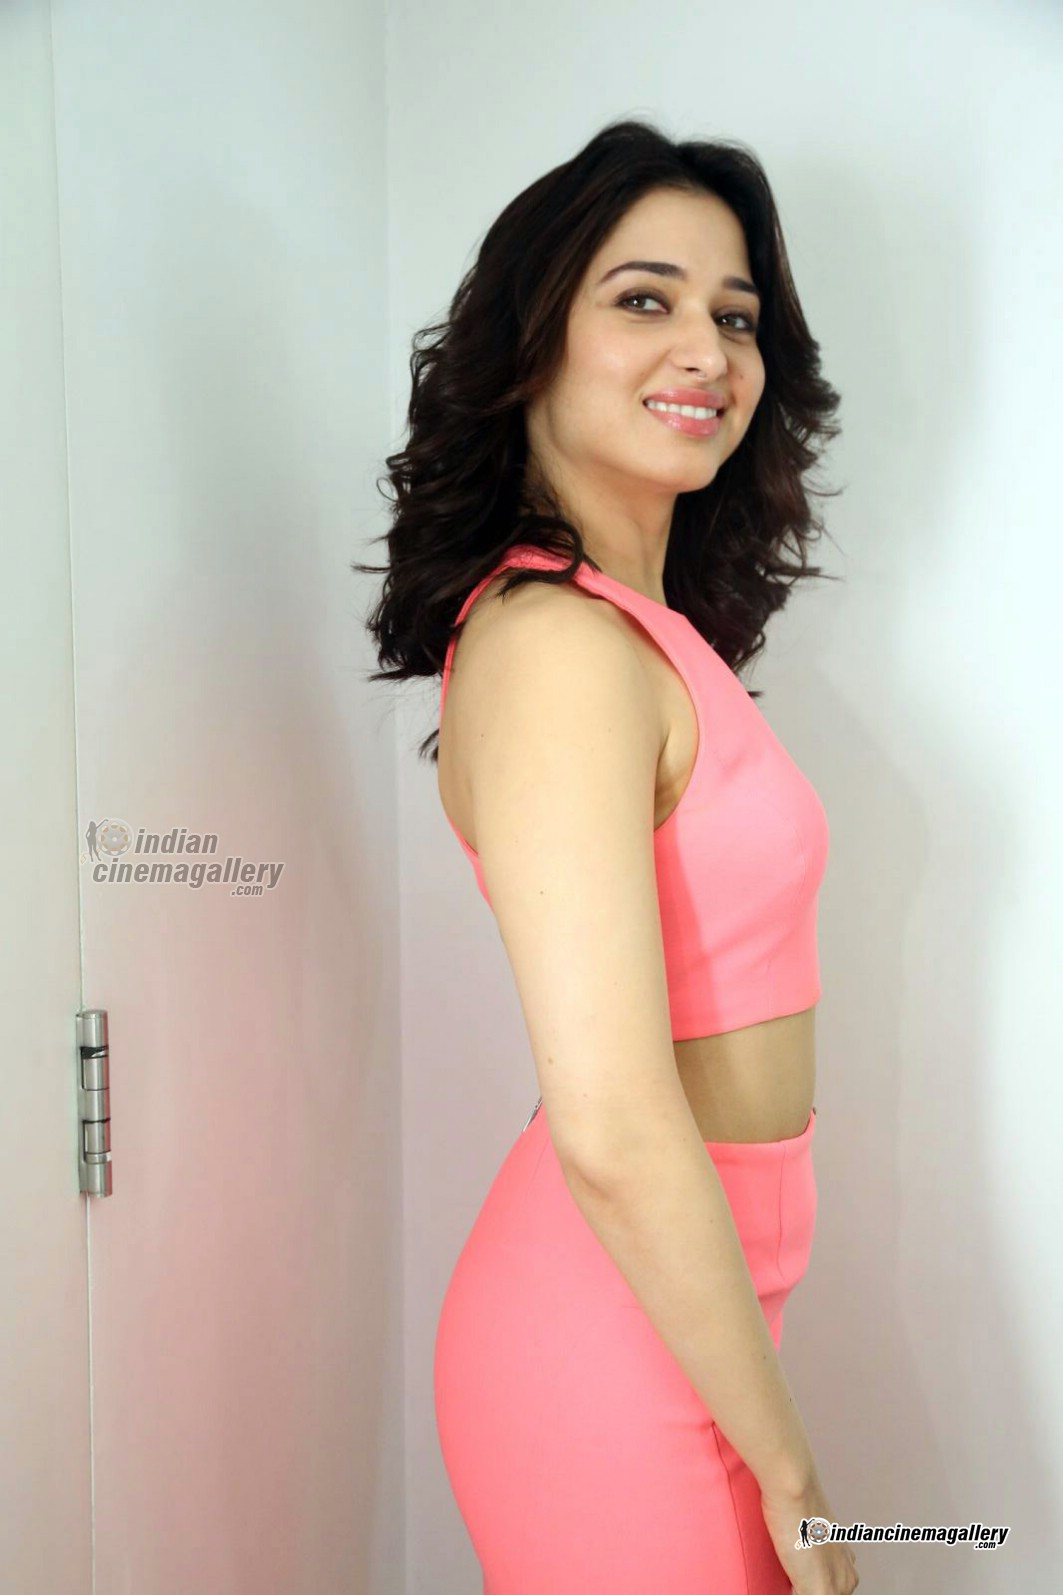 tamanna-bhatia-in-pink-dress-march-2016-pics-115058